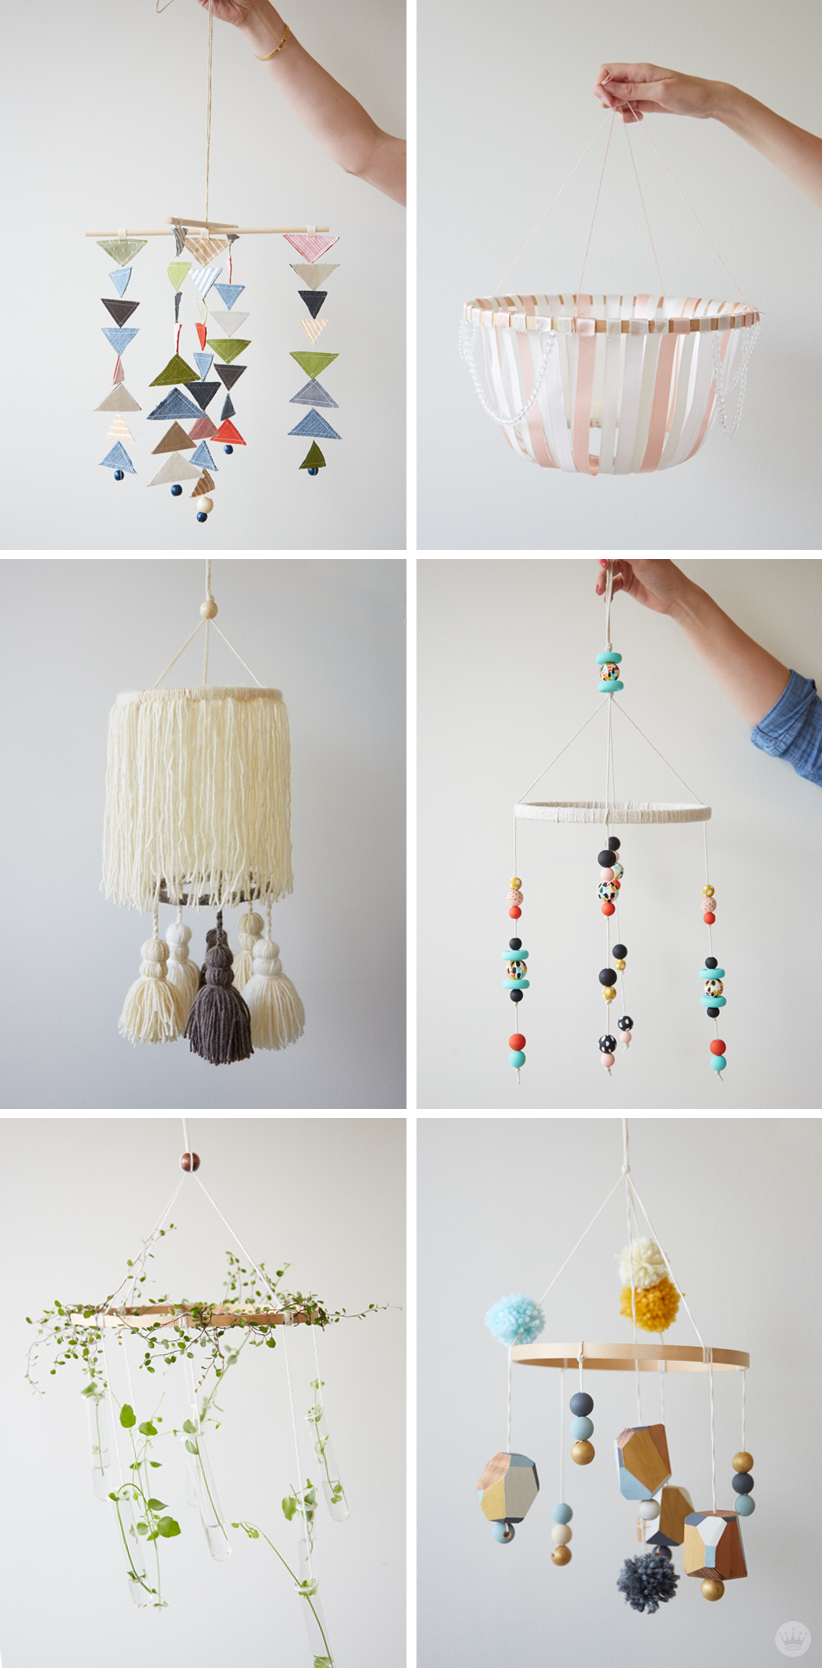 DIY: Embroidery Hoop Baby Mobile - Think.Make.Share.